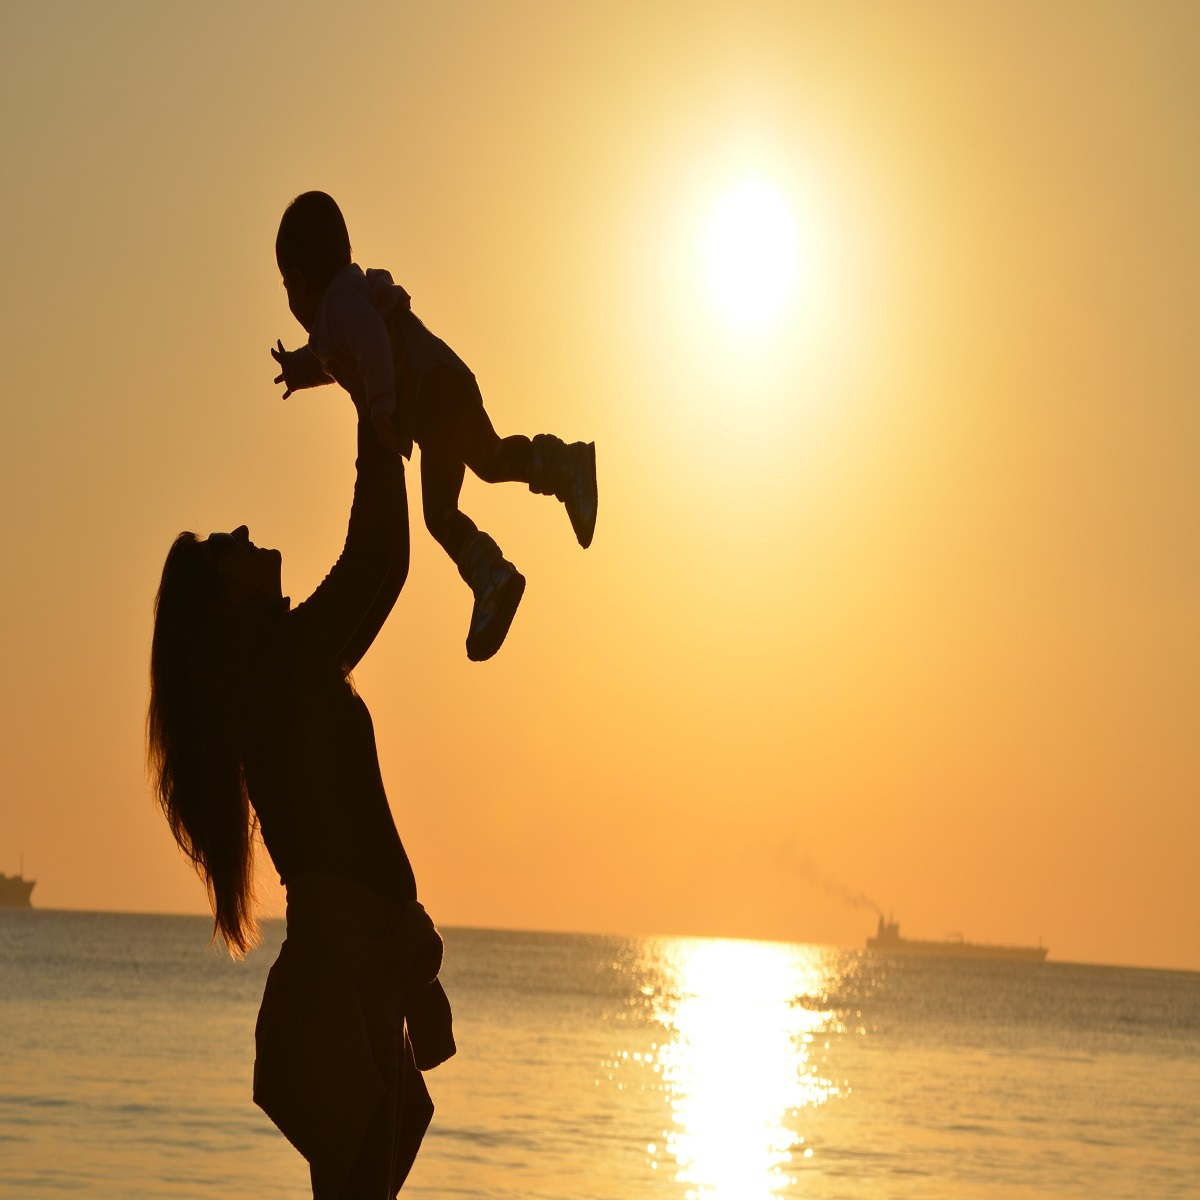 woman holding a baby on the beach at the dusk